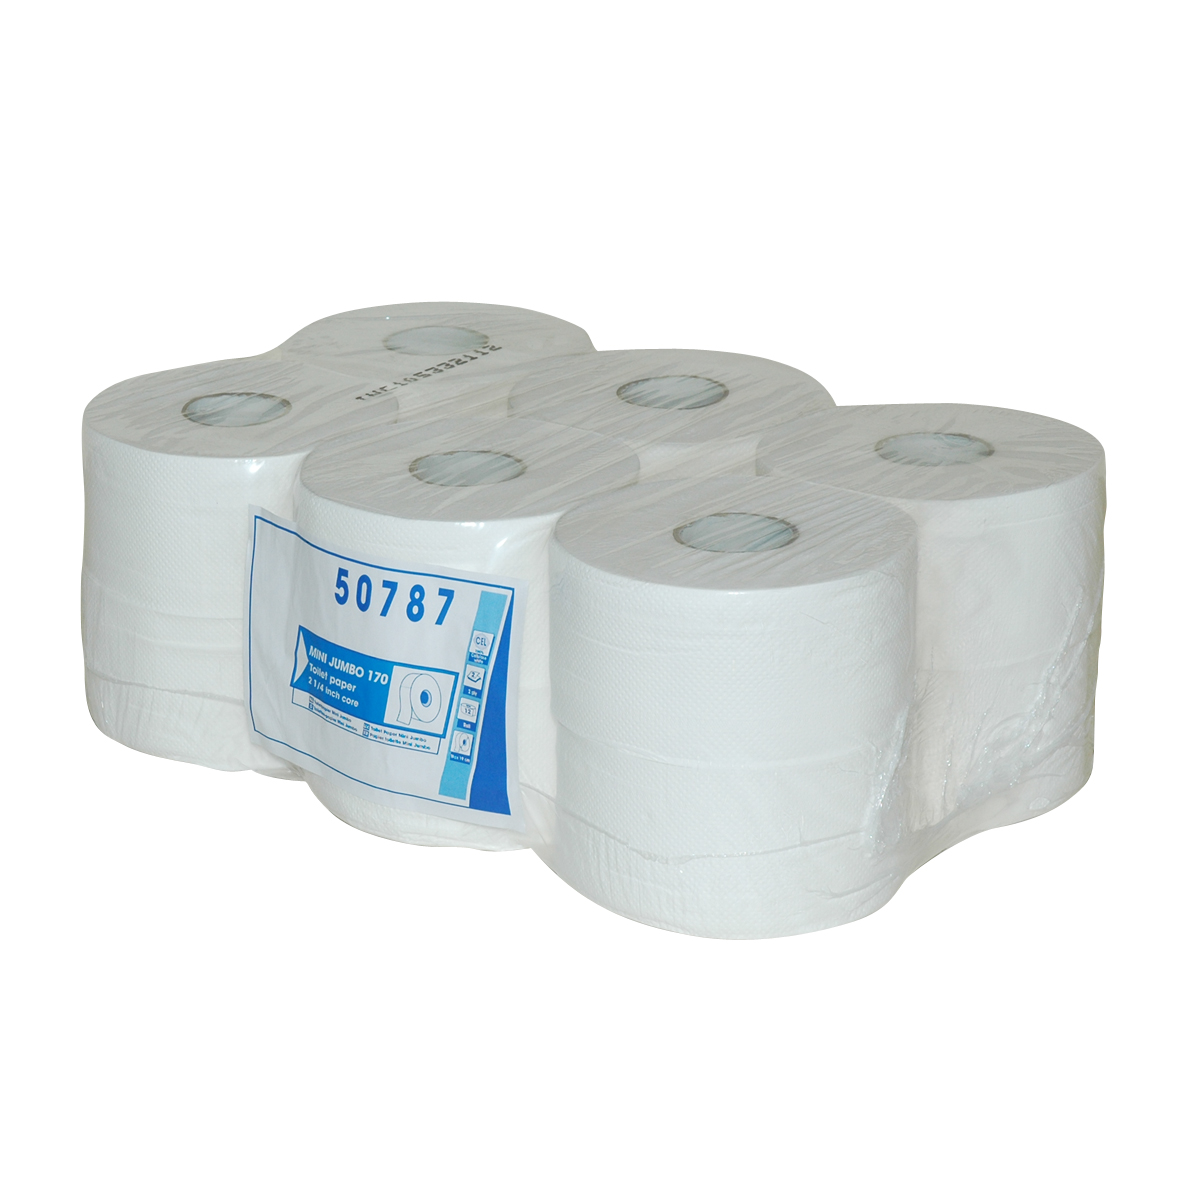 Mini jumbo toiletpaper, box 12 pcs. 2 ply